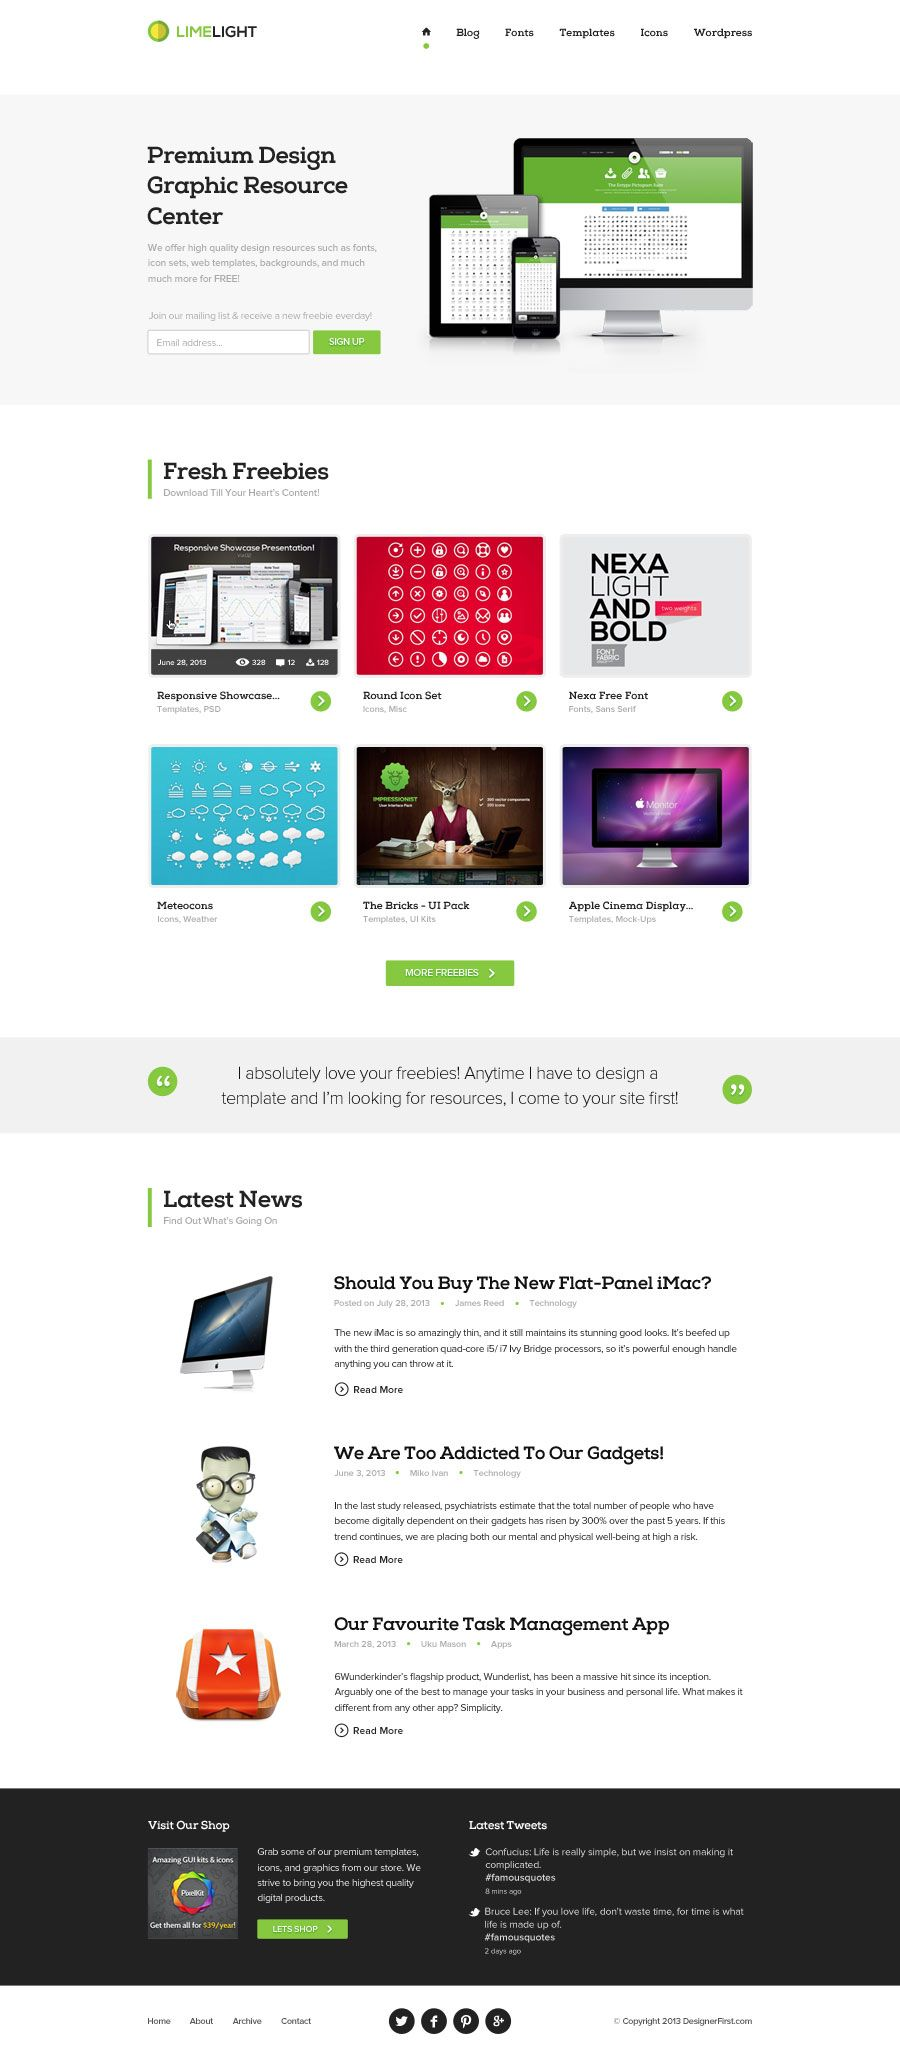 Limelight Home Free Template Free Web Template Web Design Resources Psd Templates